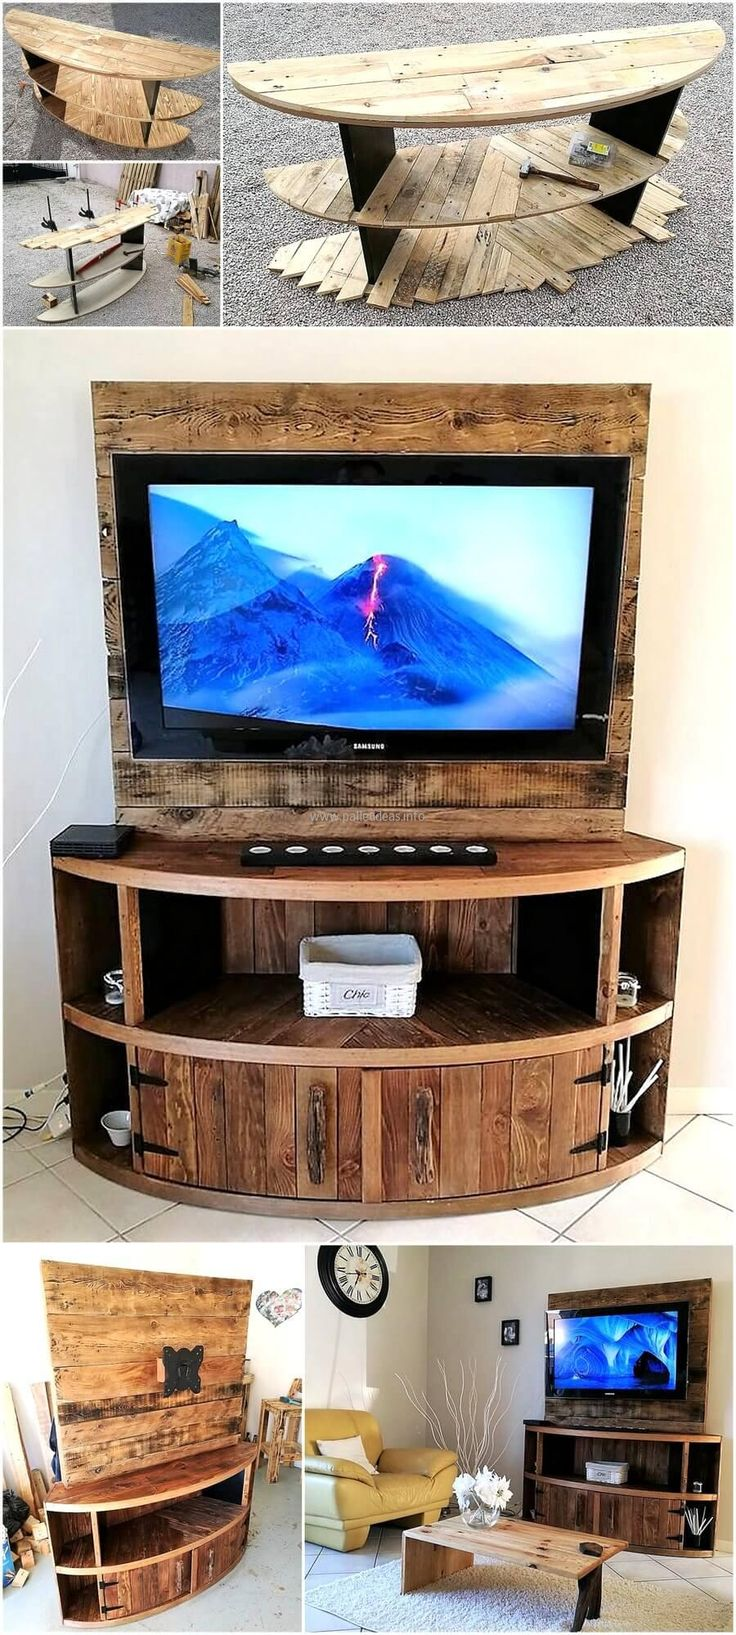 25 best ideas about pallet tv on pinterest cheap tv units cheap tvs and pallet tv stands. Black Bedroom Furniture Sets. Home Design Ideas